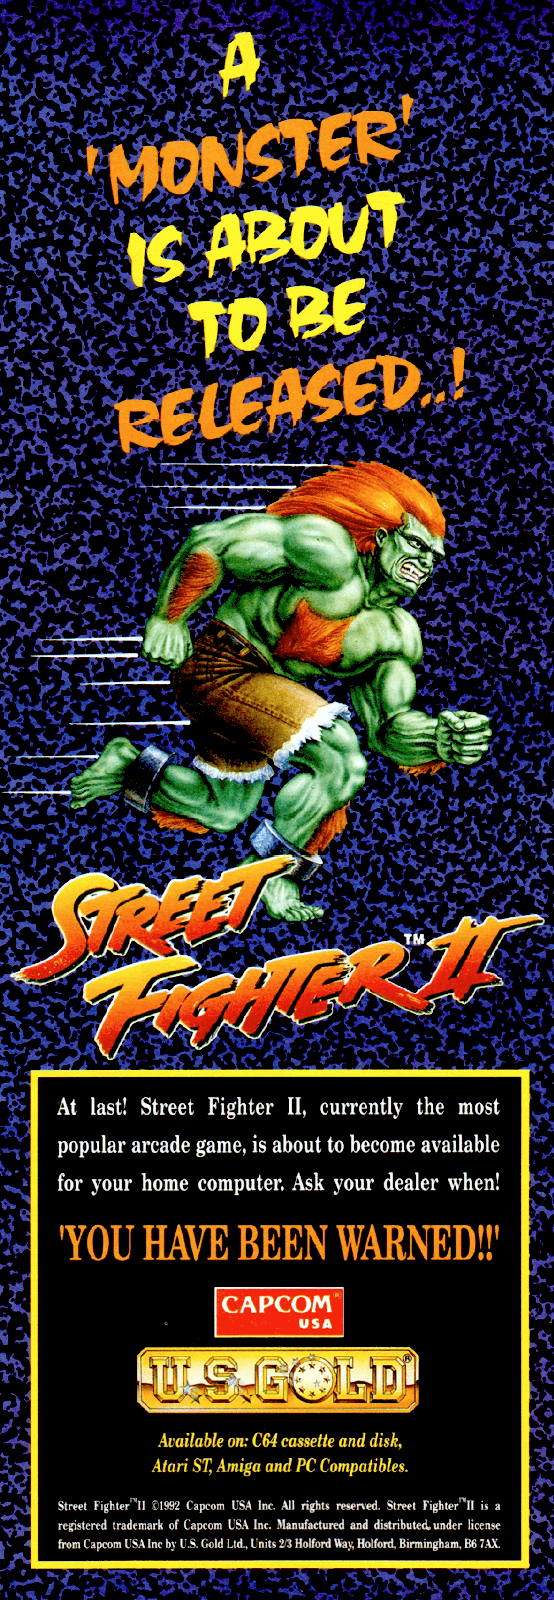 Image For Post | **Home computers**   U.S. Gold released versions of Street Fighter II for various home computer platforms in Europe, namely the Amiga, Atari ST, Commodore 64, PC (DOS), and ZX Spectrum. These versions of the game were all developed by Creative Materials, except for the ZX Spectrum version which was developed by Tiertex Design Studios. These versions were not released in any other region, except for the PC version, which also saw a release in North America (where it was published by Hi-Tech Expressions).[15] These versions suffered from numerous inaccuracies, such as missing graphical assets and music tracks, miscolored palettes, and lack of six-button controls (due to these platforms having only one or two-button joysticks as standard at the time). As a result, these versions are filled with unusual peculiarities such as Ryu and Ken's Hadouken (Fireball) sprite being a recolored Yoga Fire and the title theme being used as background music for matches, while move properties are completely different. In the DOS version, in particular, Dhalsim ends up being the strongest fighter in the game due to his basic attacks having high priority over other characters. The DOS version also saw a bootleg version and was actually considered by many, while mediocre, to be still quite superior to the official DOS version. Despite being officially advertised by US Gold along with the C64 and ZX Spectrum conversions and anticipated on magazines, the Amstrad CPC development by Creative Materials was scrapped and the port finally never surfaced.  **C64 version**   One interesting quirk about the Commodore 64 version of the game is that the special moves printed in the manual for each character were just plain wrong.   **Game Boy**   The Game Boy version of Street Fighter II was released on August 11, 1995 in Japan, and in September 1995 internationally. It is missing three of the original characters (Dhalsim, E. Honda, and Vega), although the remaining nine are playable.